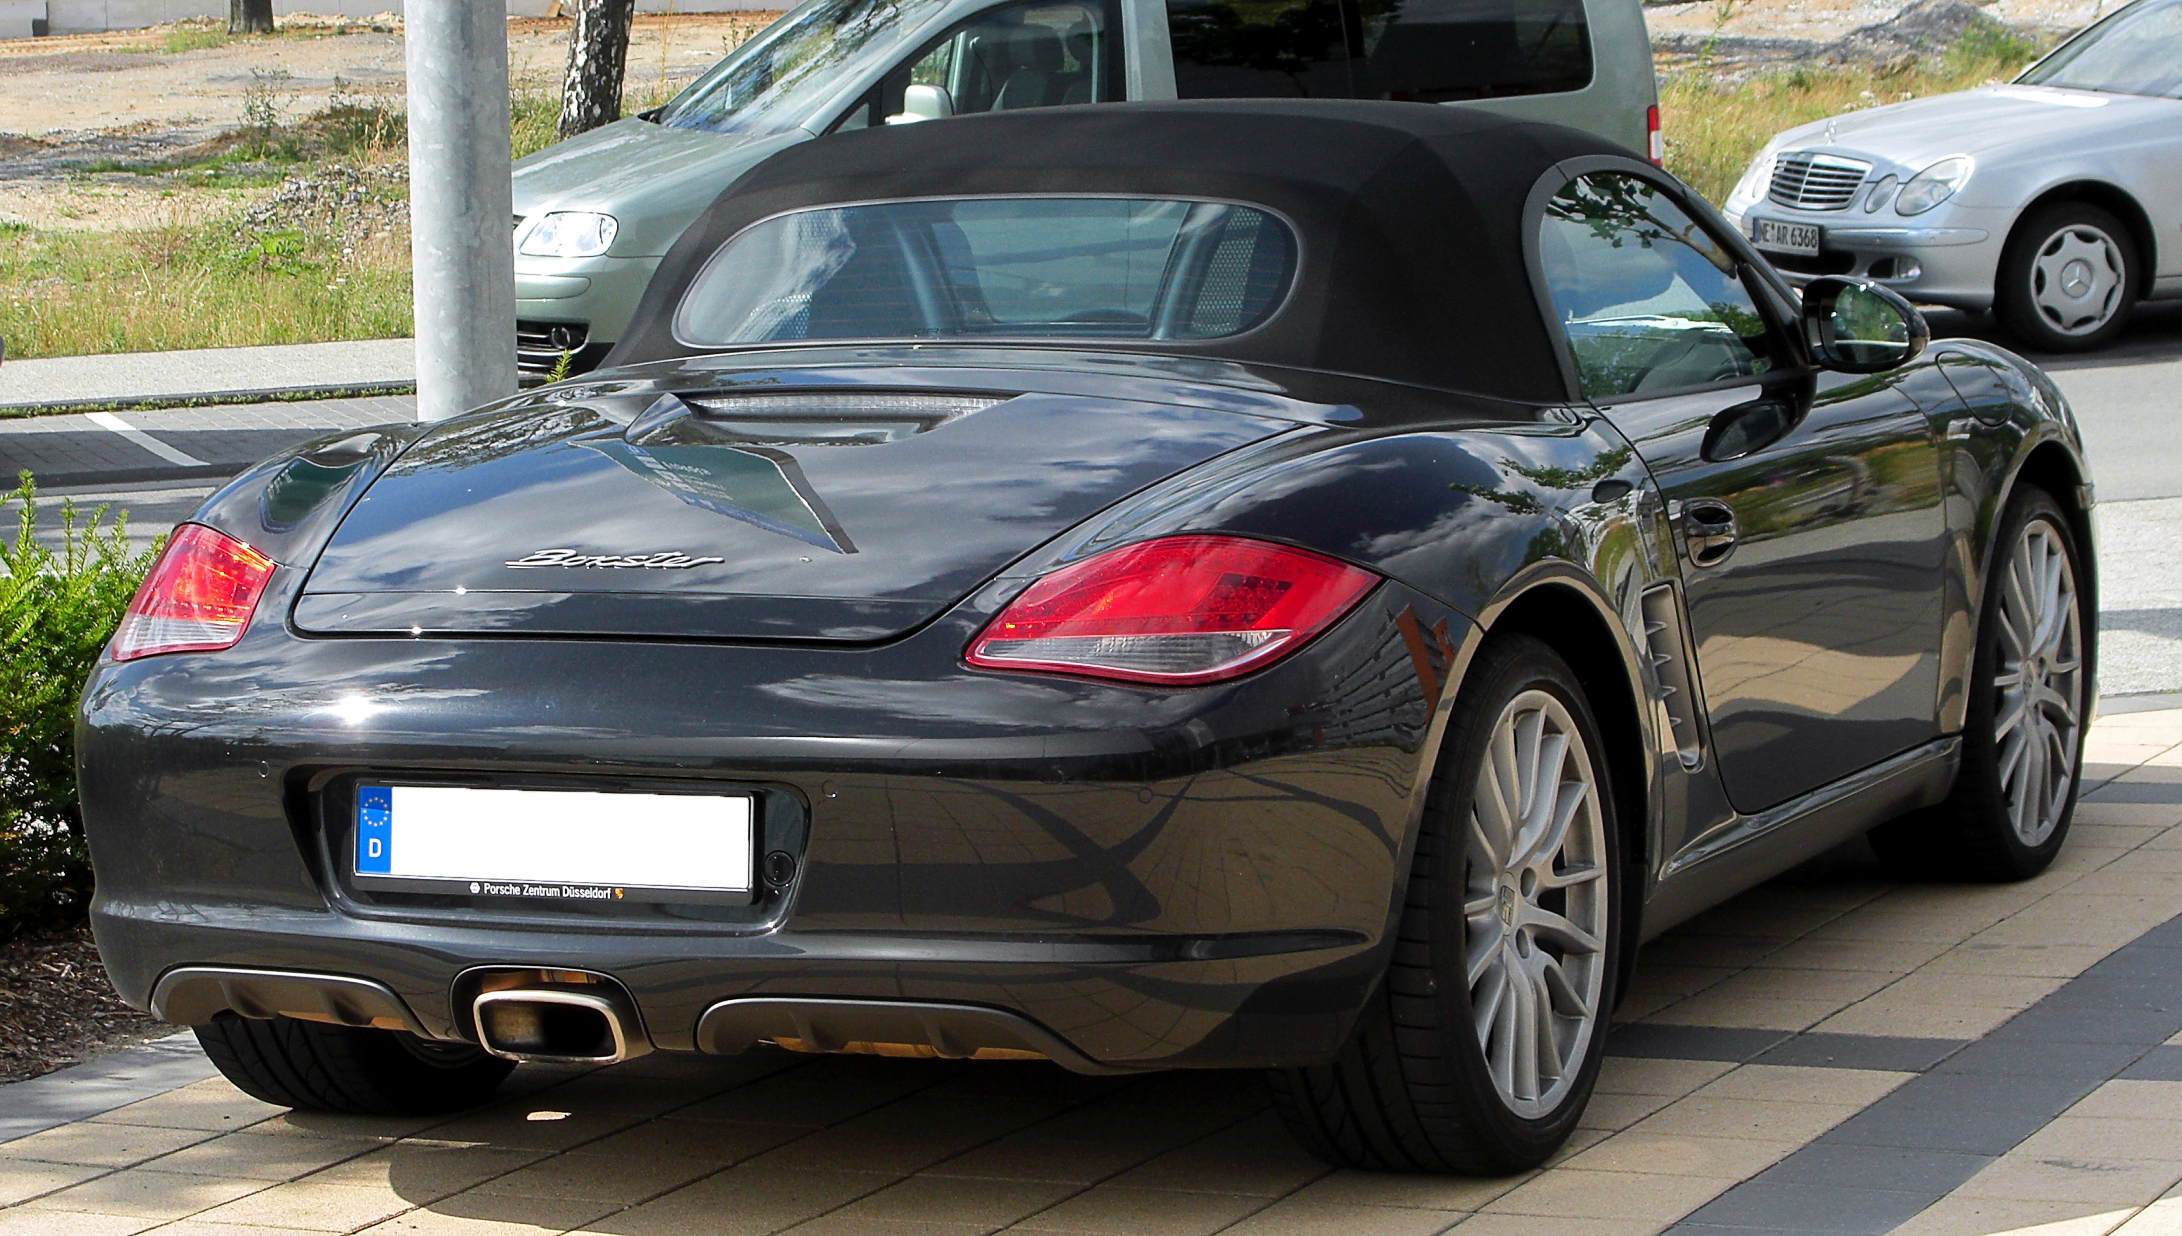 File:Porsche Boxster (987) Facelift rear 20100724.jpg